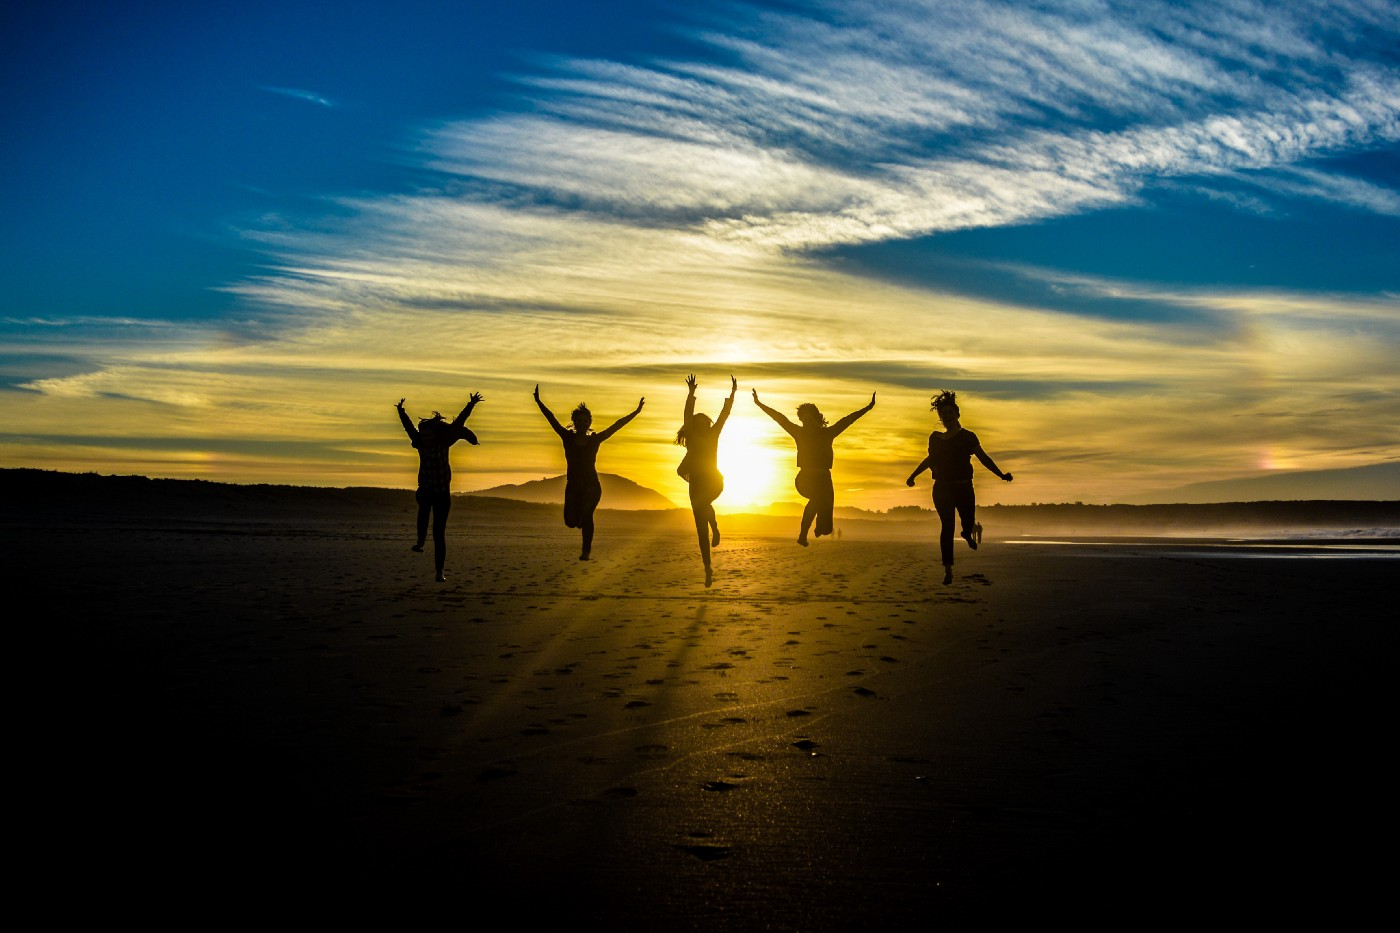 A group of people running on sand towards a sunset, leaping into the air